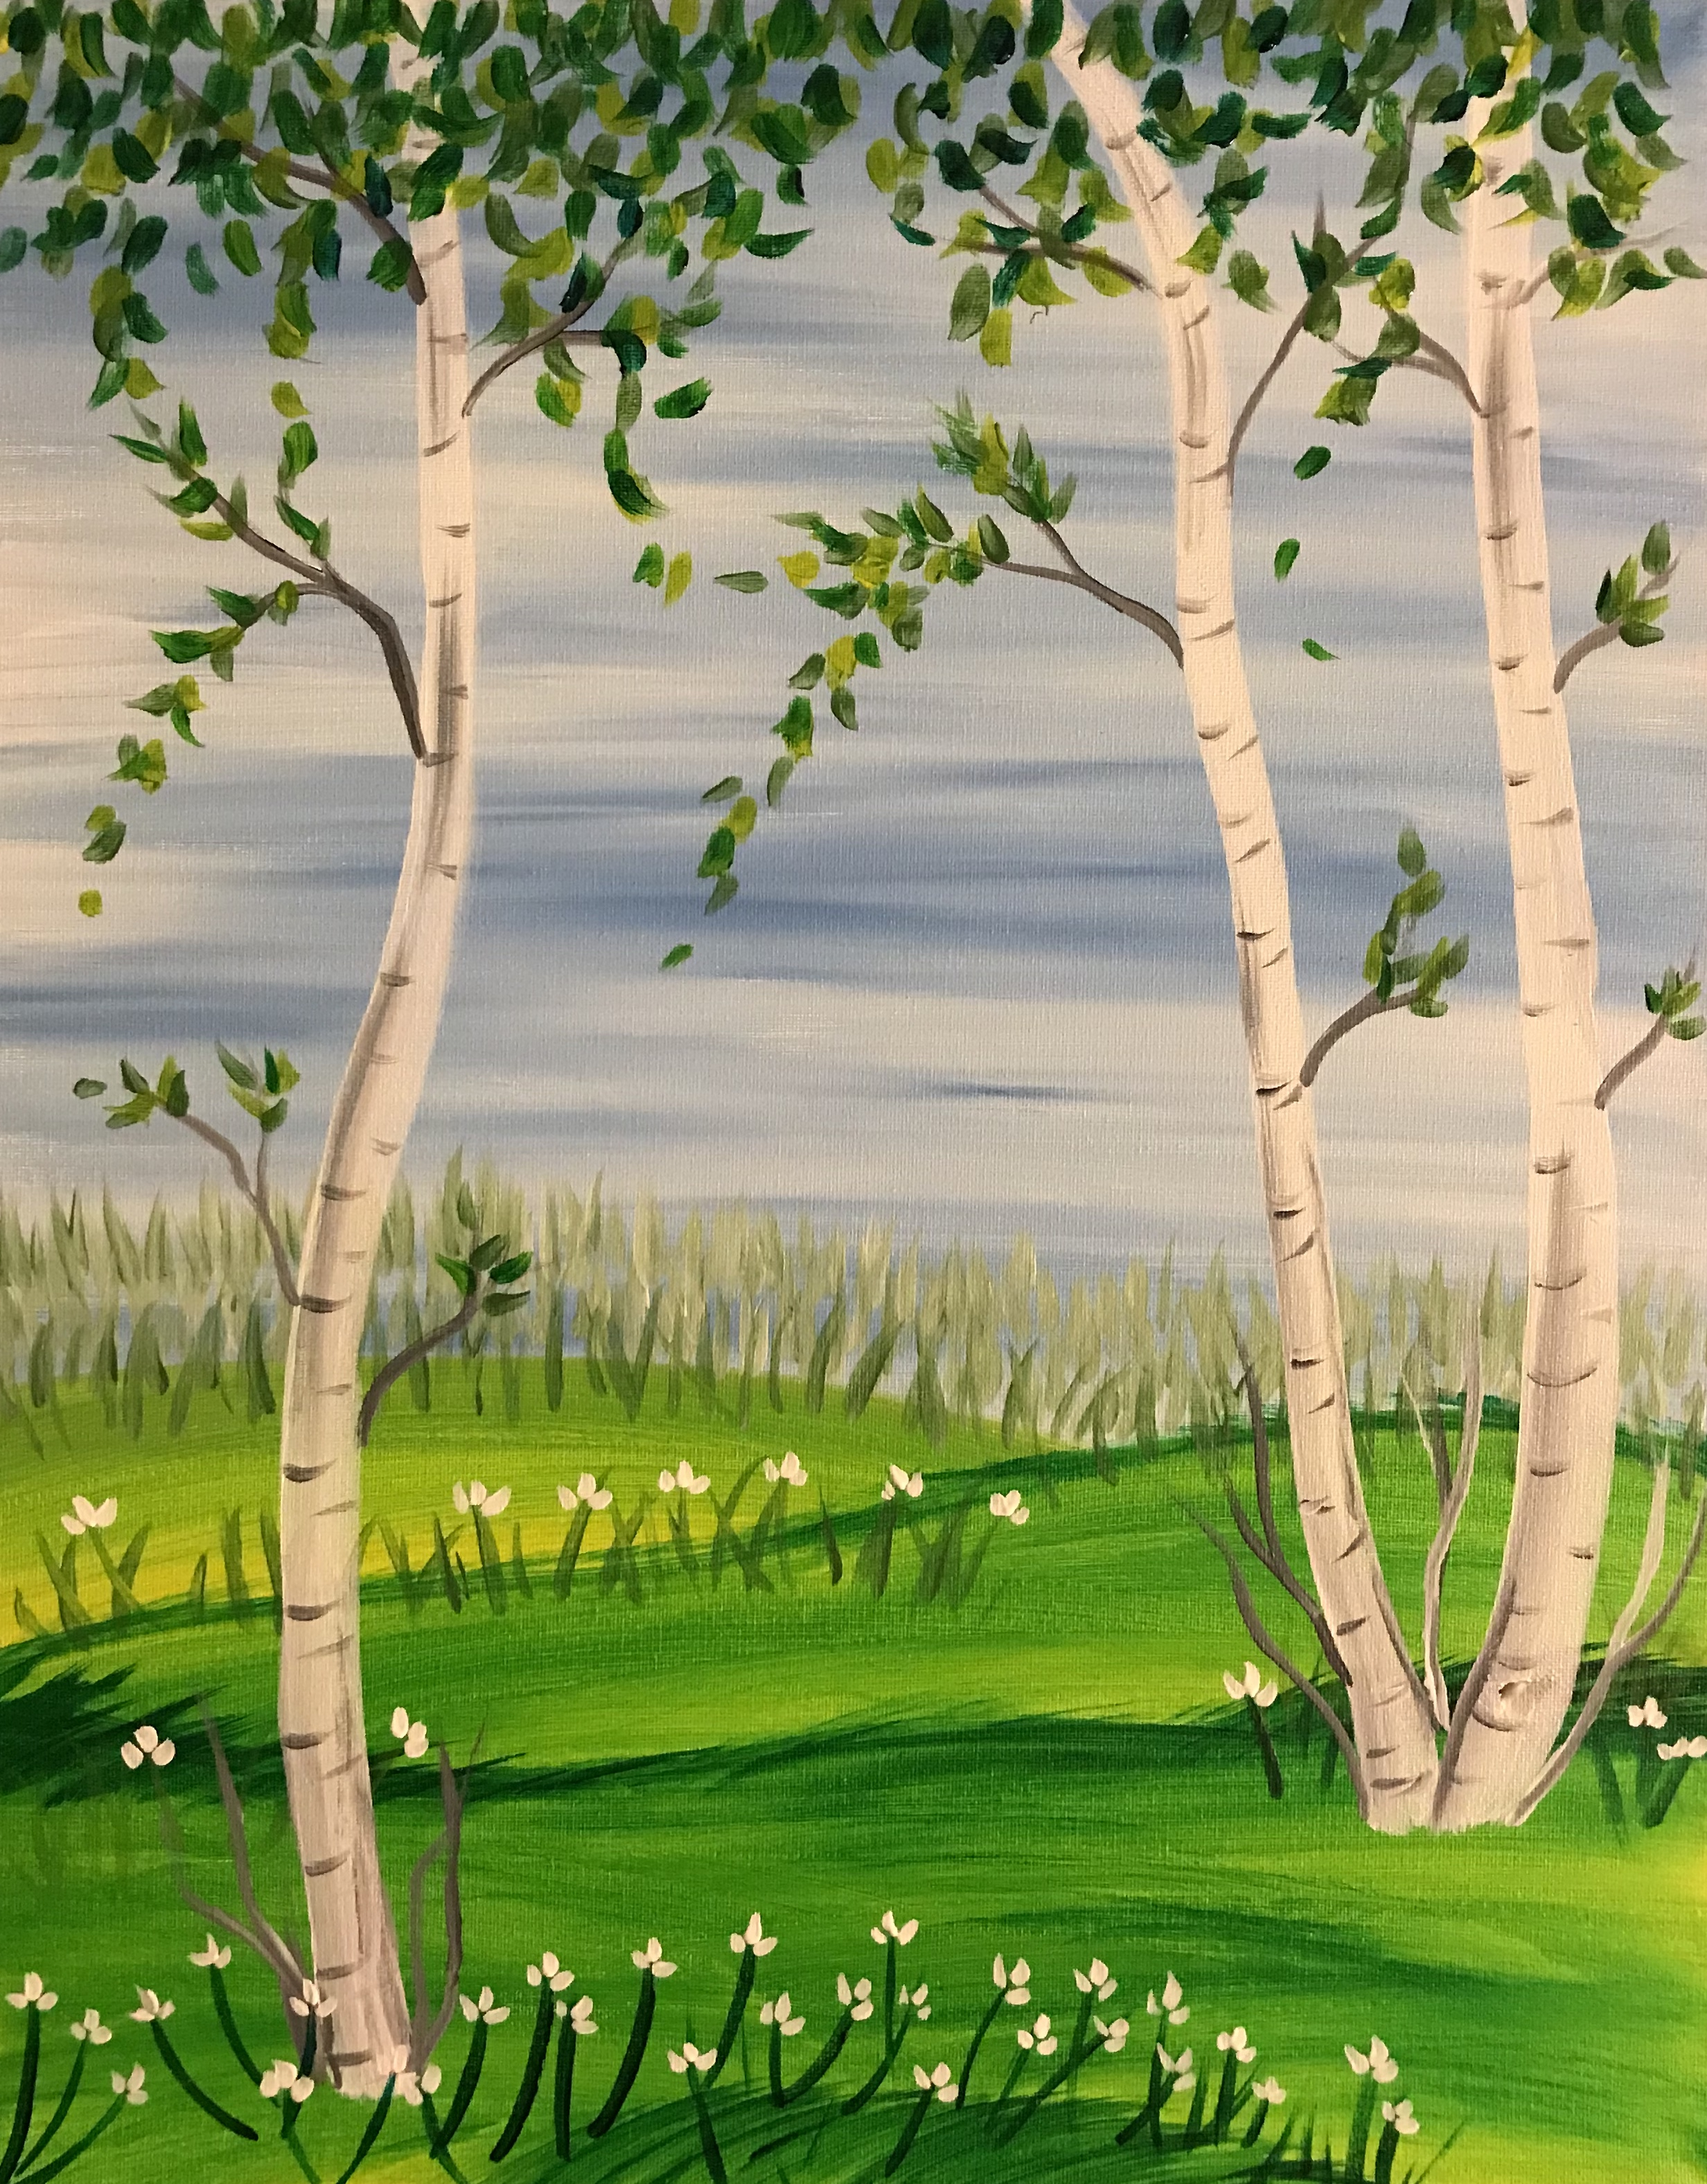 5.10.18 THU green birch trees.jpg